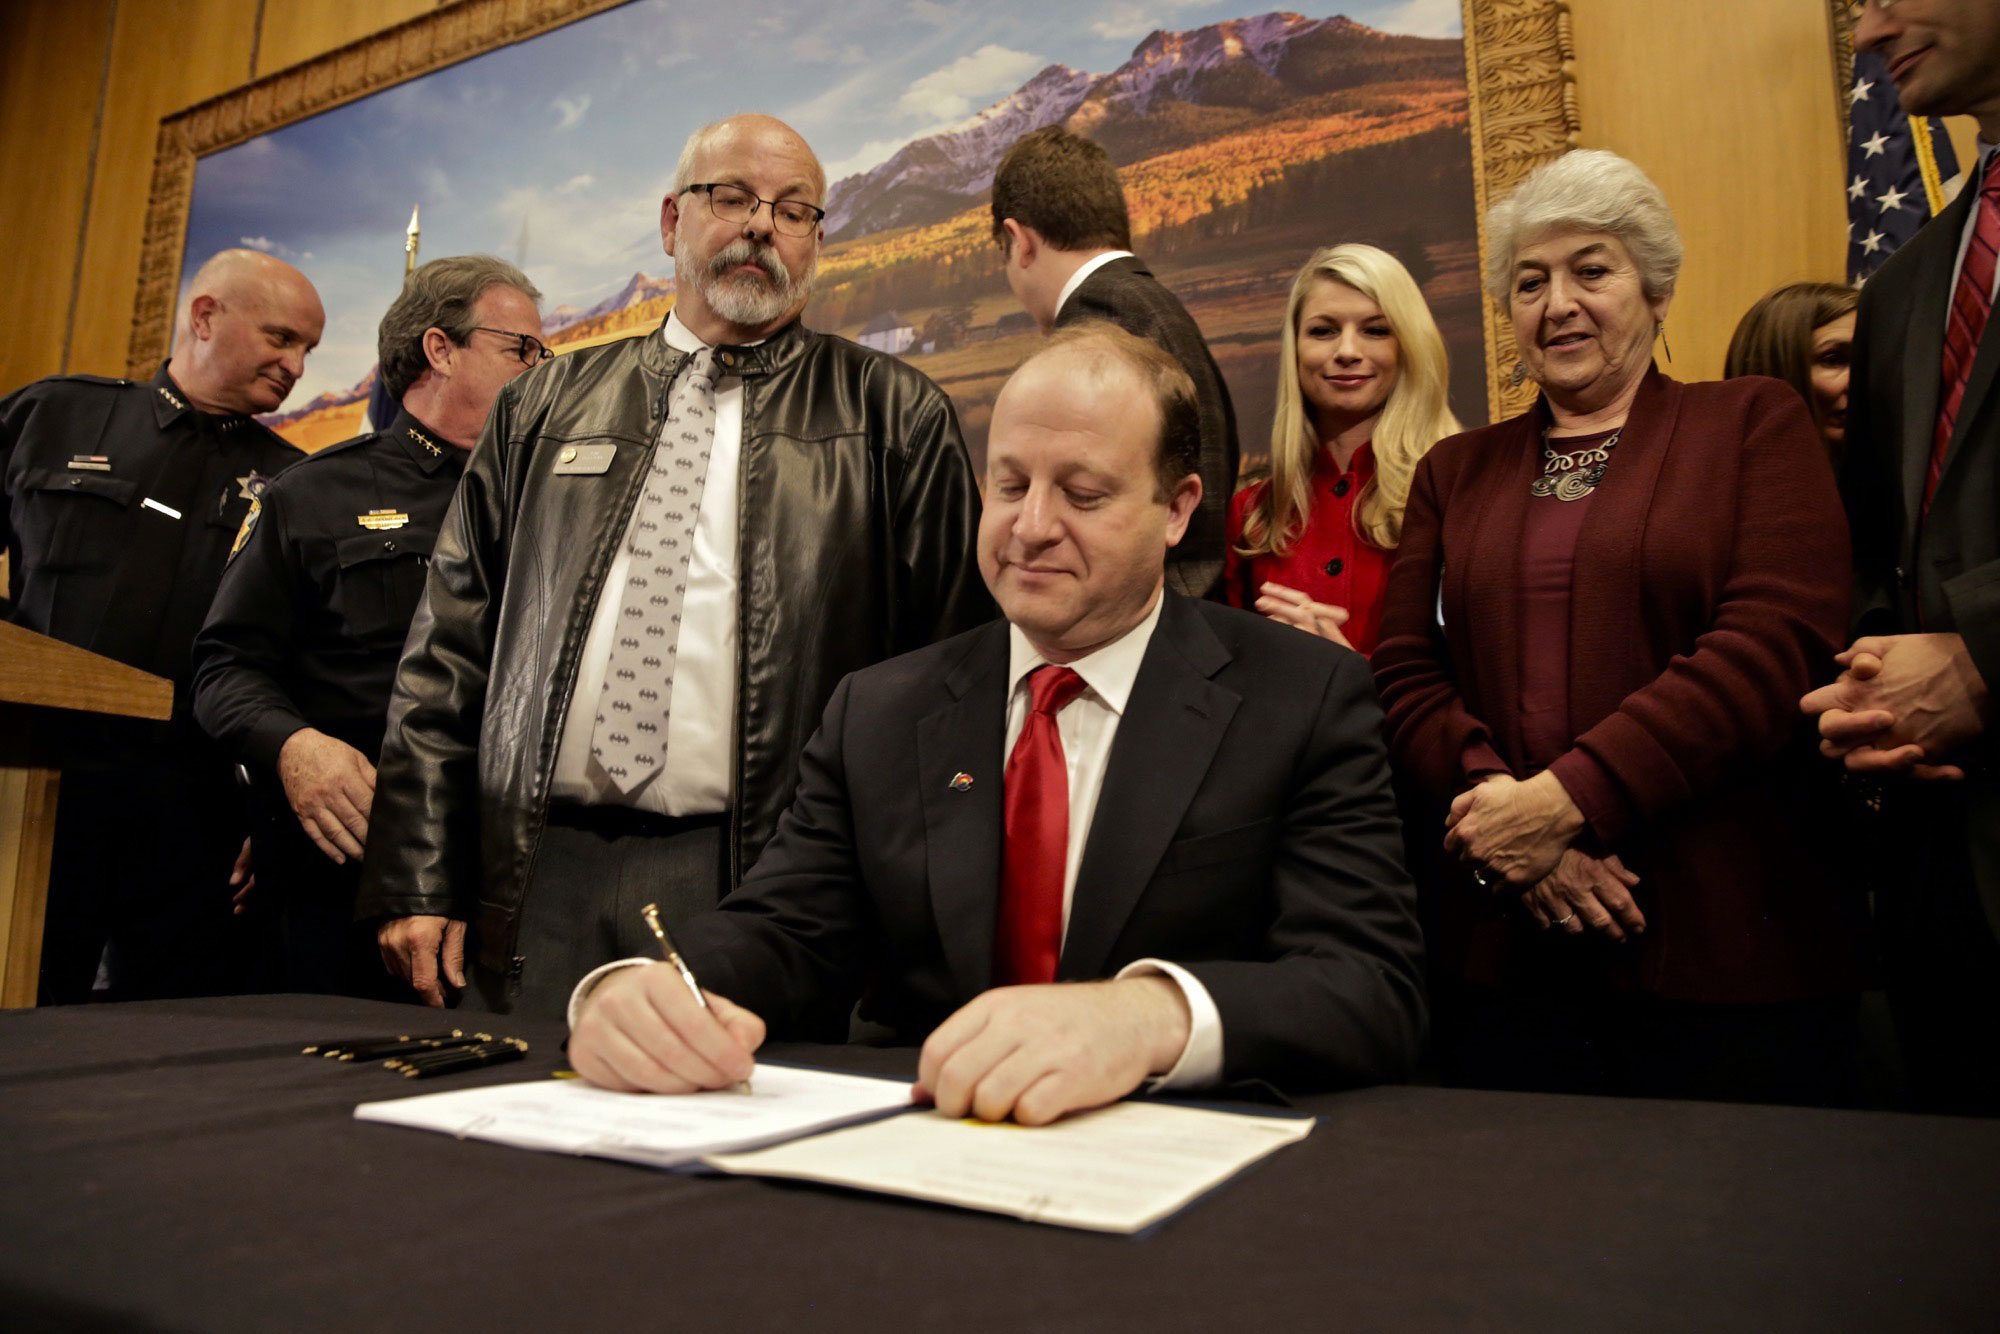 """<p>As state Rep. Tom Sullivan looks on, Colorado Gov. Jared Polis signs into law HB 1177 Friday, April 12, 2019, making Colorado the 15th state in the country to have a so-called """"red flag"""" gun law. Sullivan was elected in November and was one of the bill's sponsors. He got involved in politics after his son Alex was killed in the Aurora Theater shooting.</p>"""